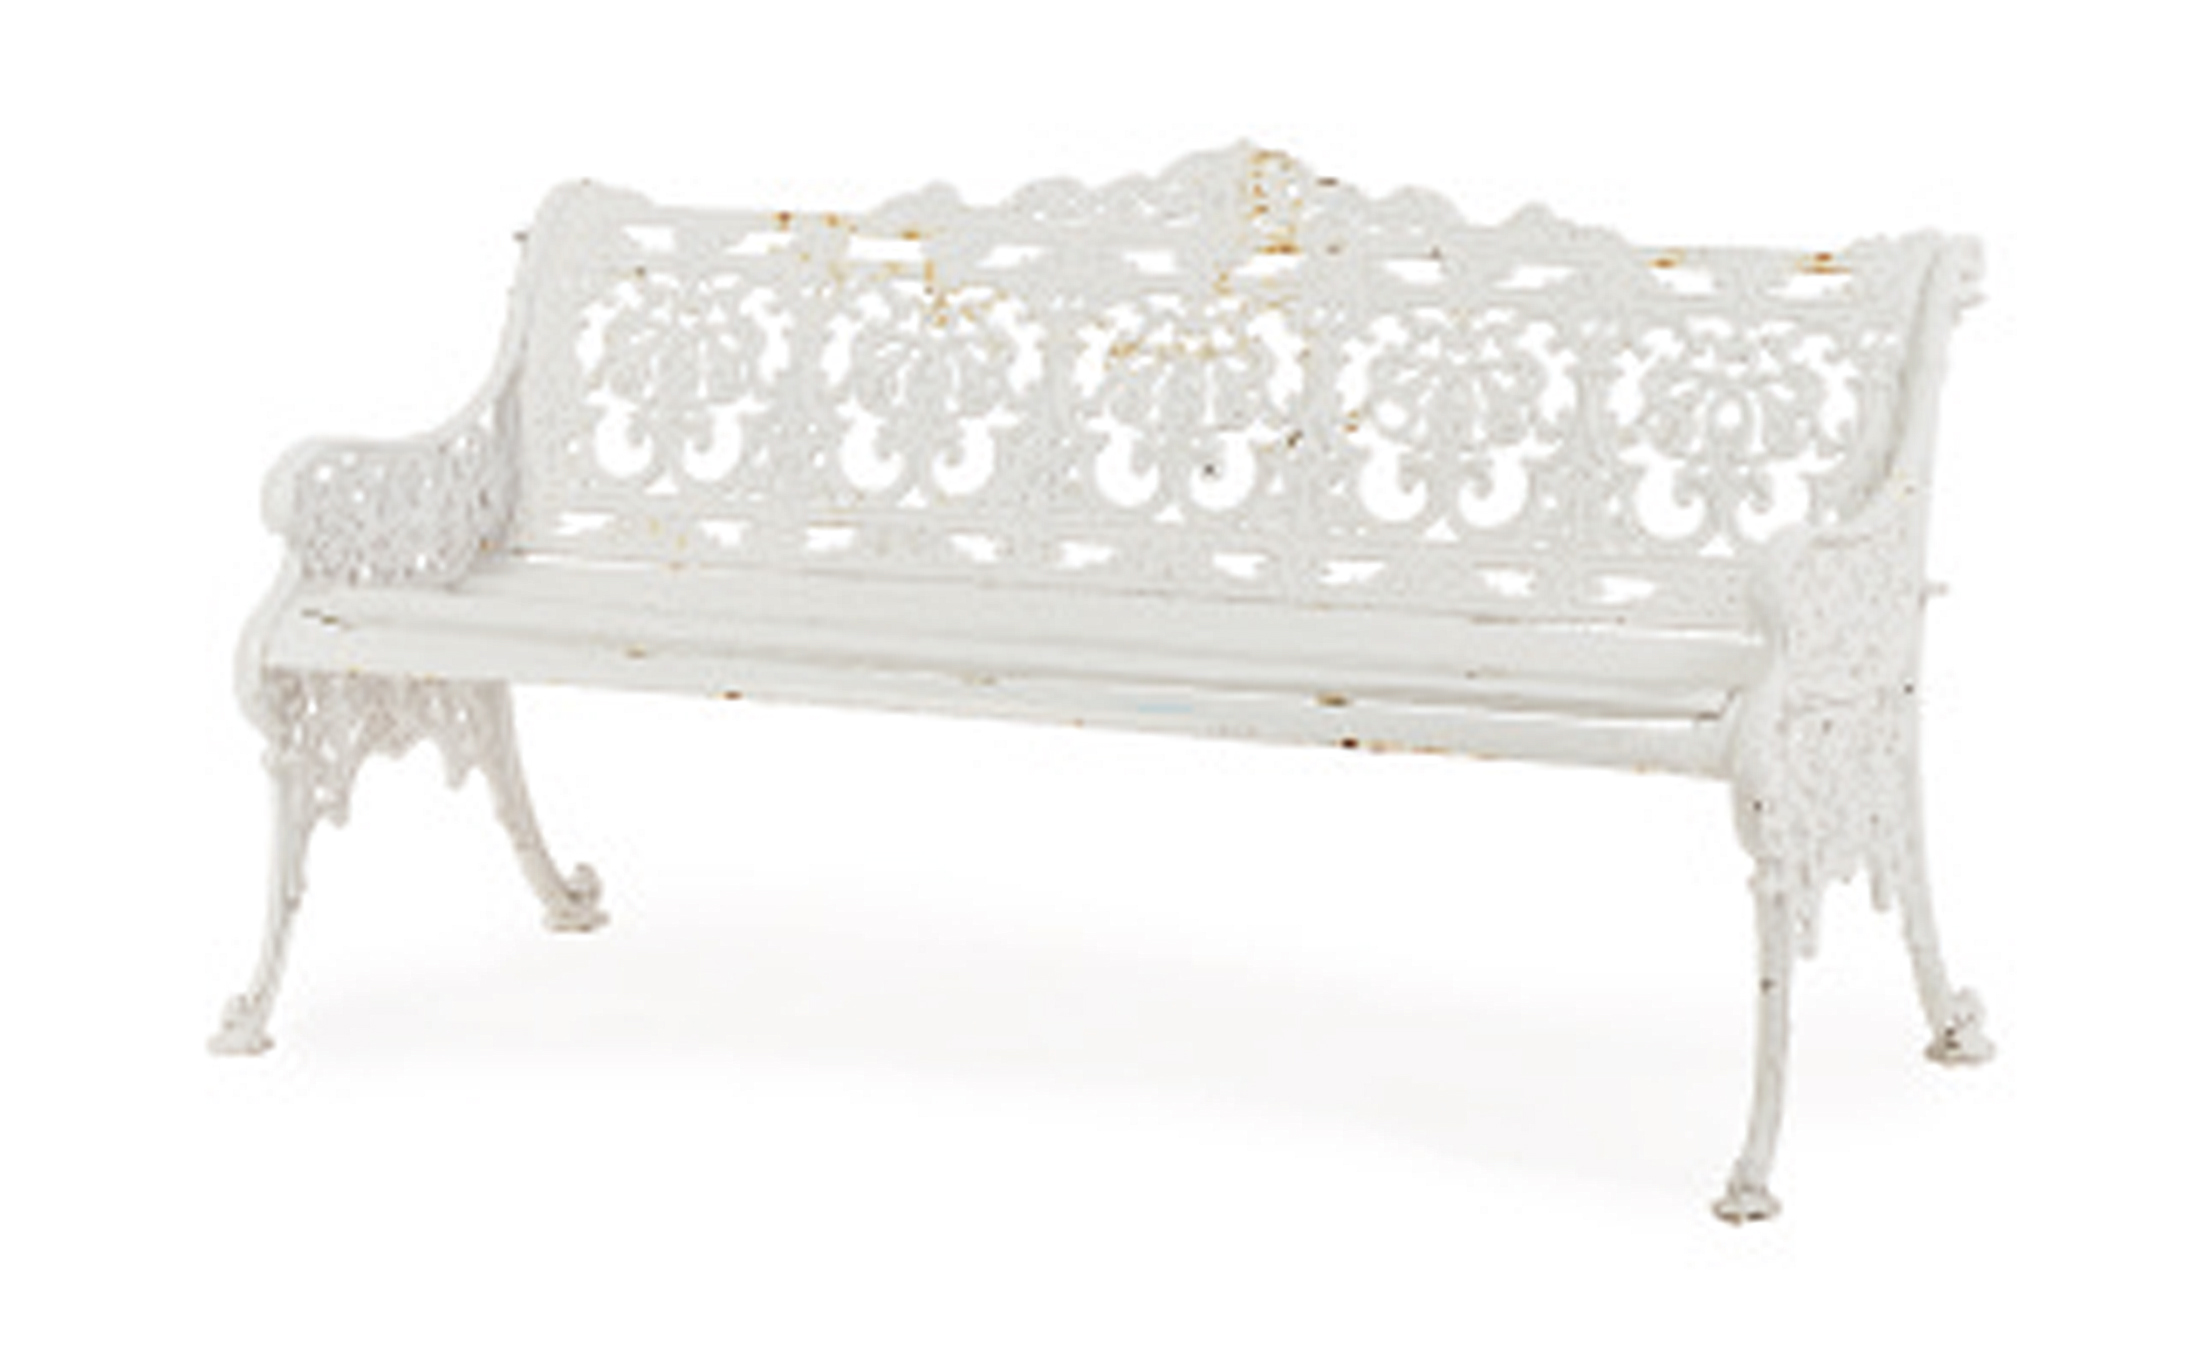 iron houserdquo house cast furniture white bench catalogue rdquo view garden victorianbenchwhitebackground ldquo ldquowhite